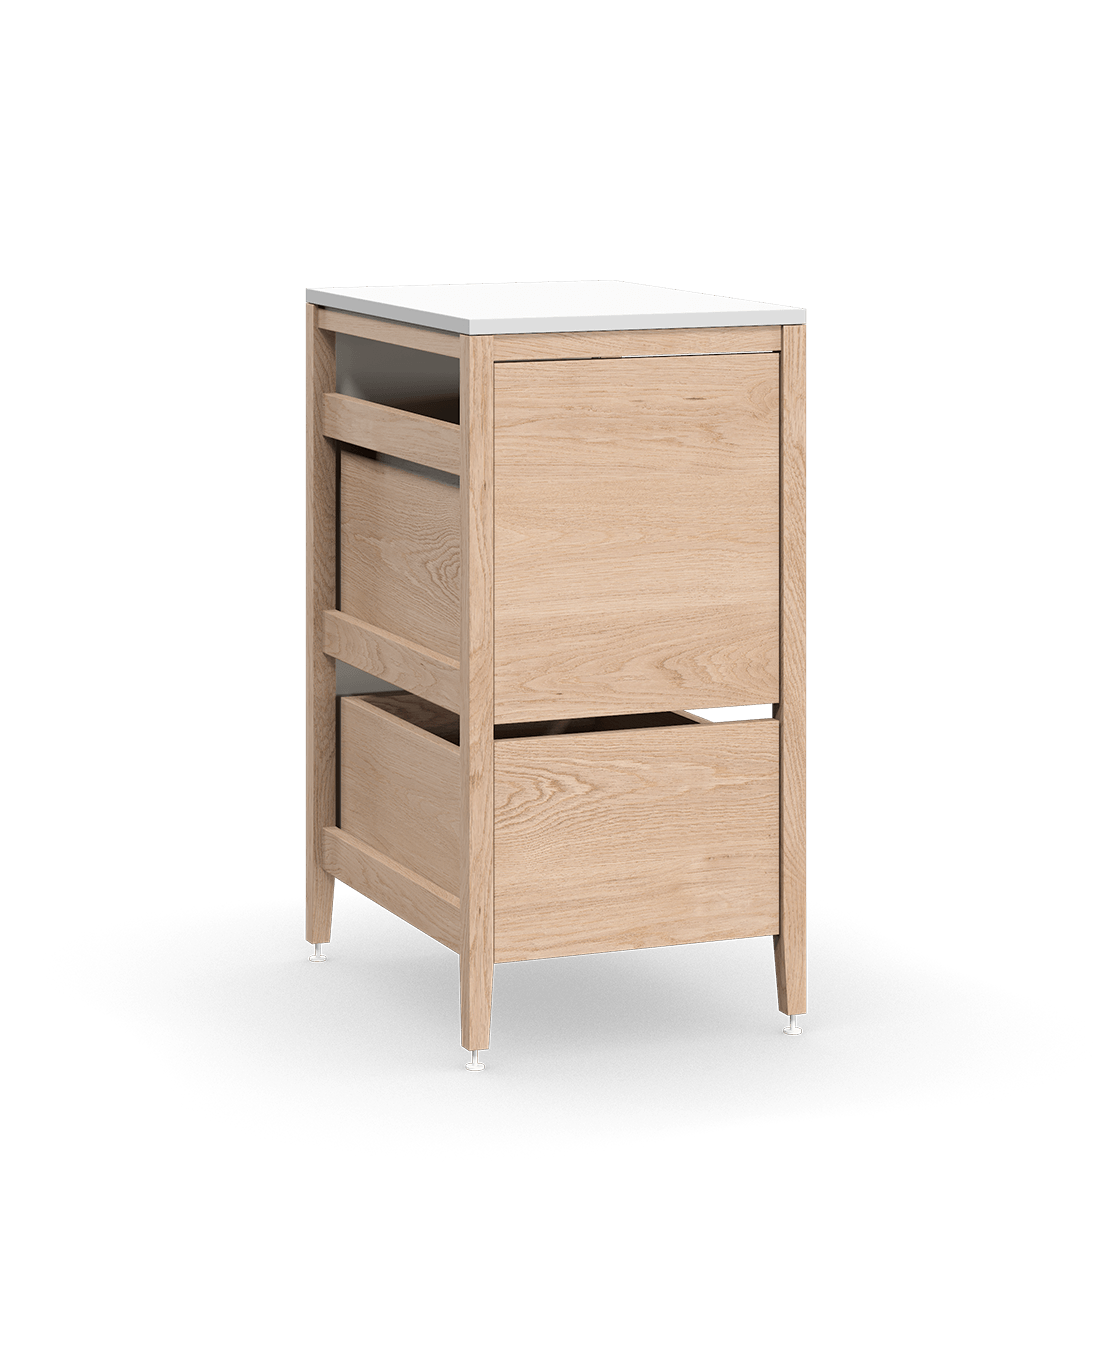 coquo radix white oak solid wood modular 1 drawer 2 bins trash base kitchen cabinet 18 inch C1-CTR-18TB-2003-NA